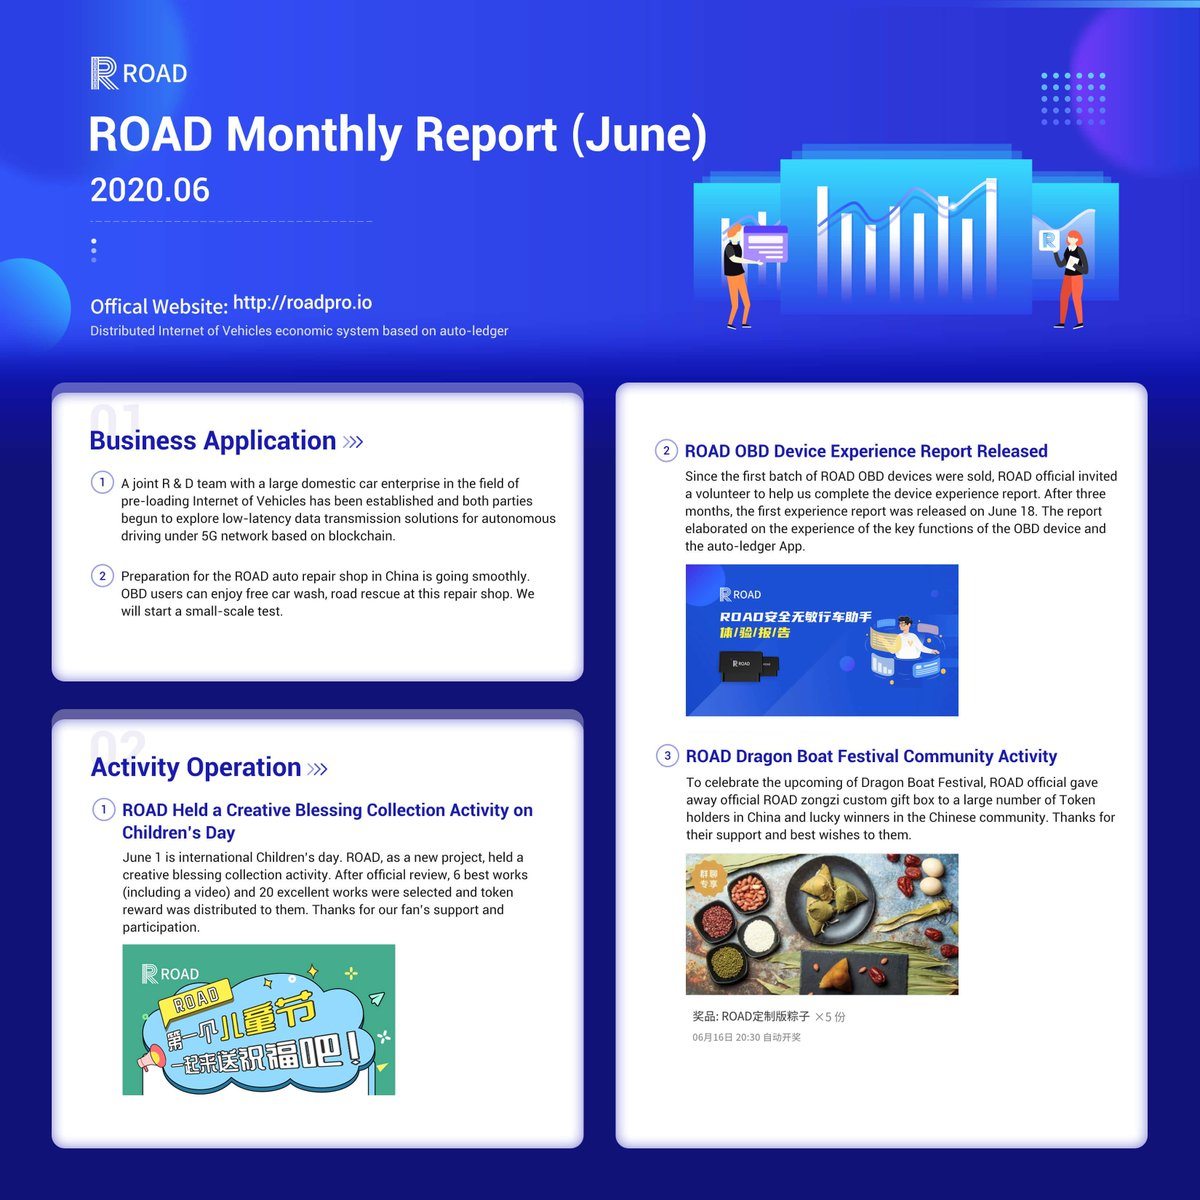 #ROAD Monthly Report (2020.06)  Medium link: https://t.co/KZx2k8xIJx    #Blockchain #MonthlyReport #technology #IoV #intchain #IoT https://t.co/4FwnWi5KDw